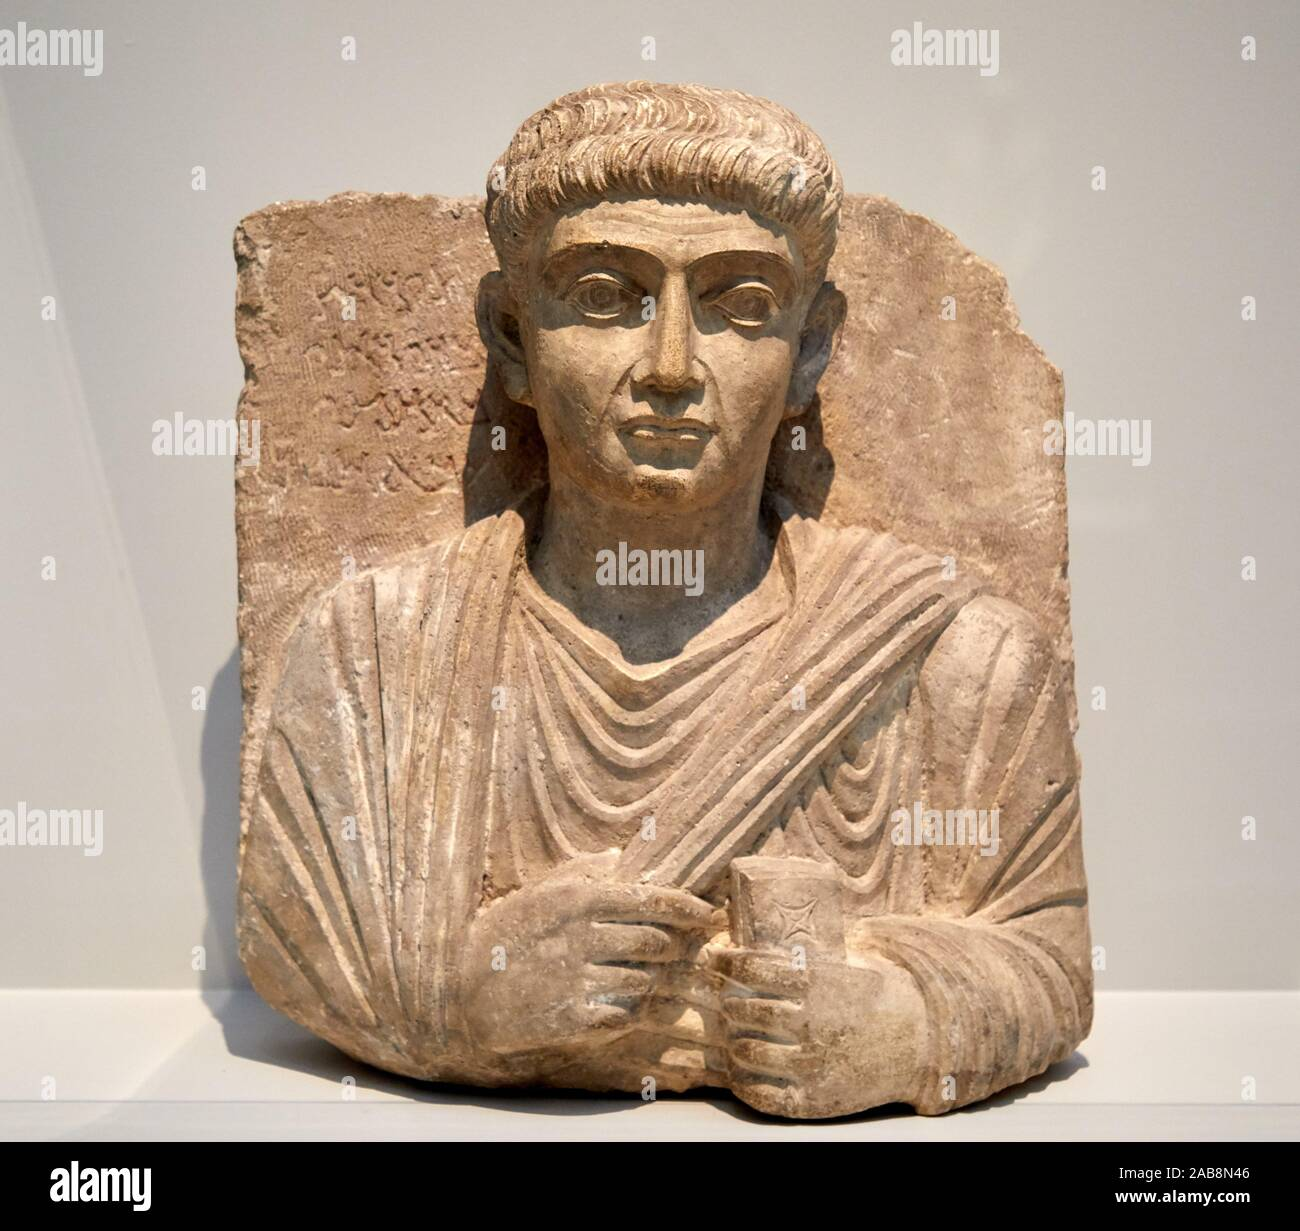 """""""Male Bust"""", First half of 2nd century AD. Limestone, Funeral Stele (Palmyra, Syria), Museo de Bellas Artes, Bilbao, Bizkaia, Basque Country, Spain Stock Photo"